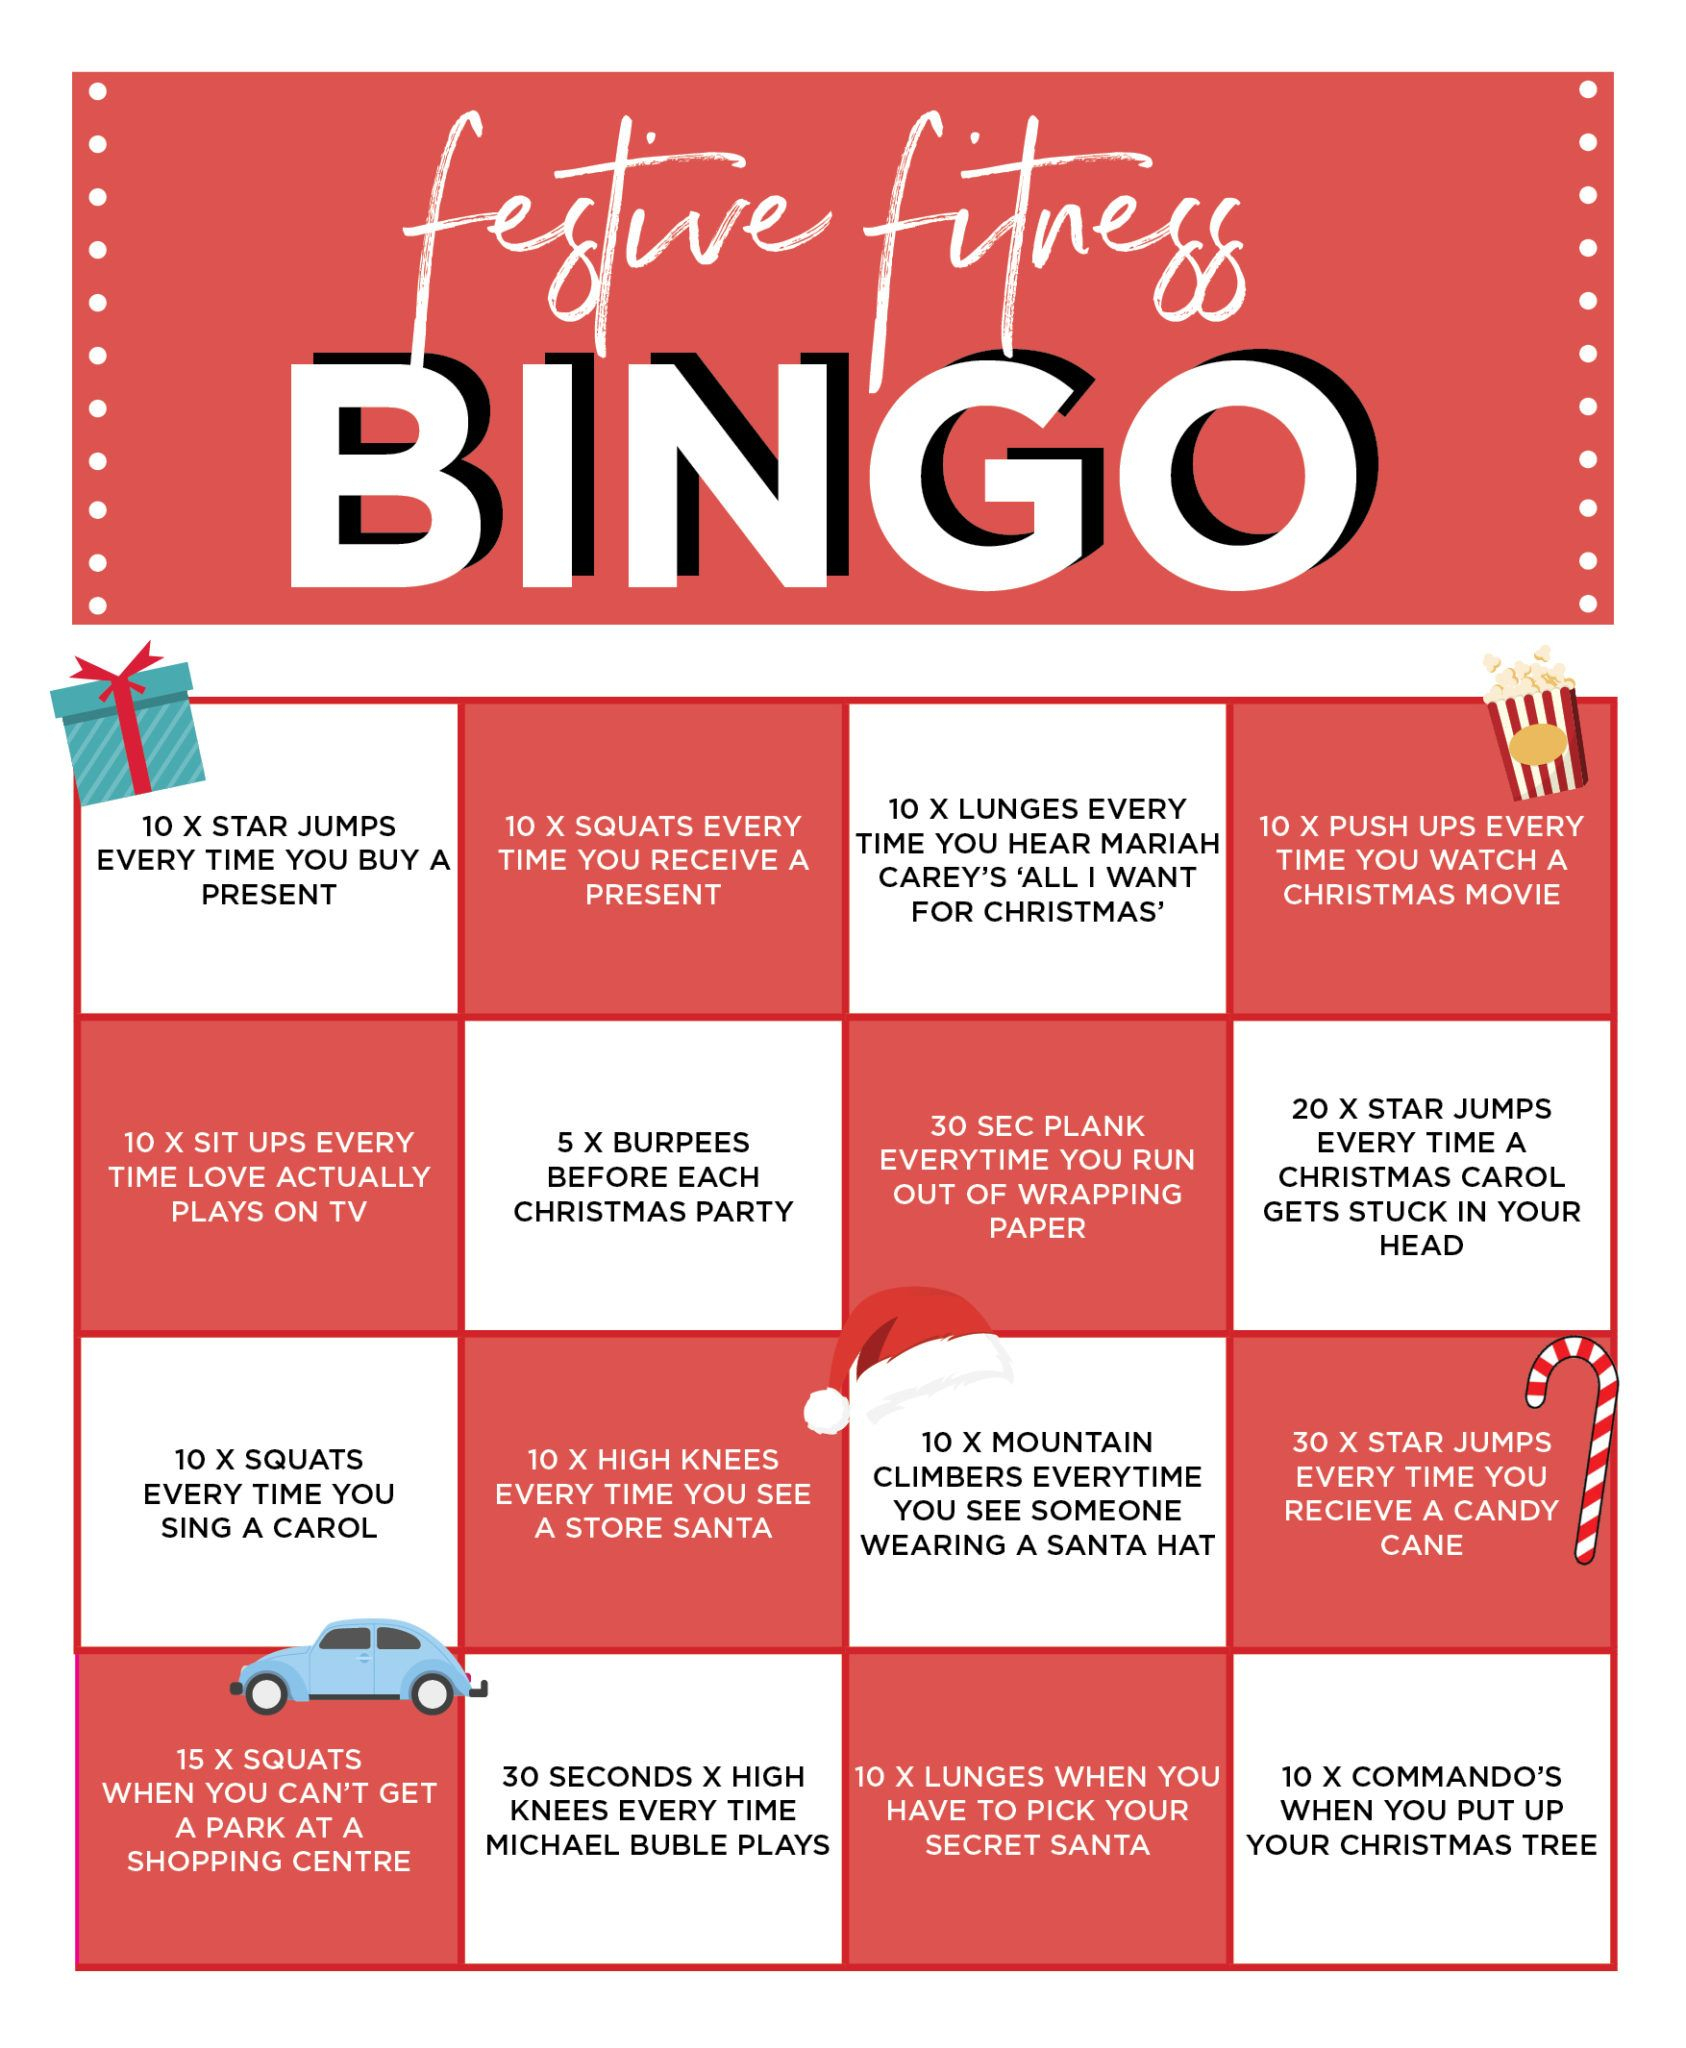 Festive Fitness Bingo | Card Workout, Bingo, Movie Workouts